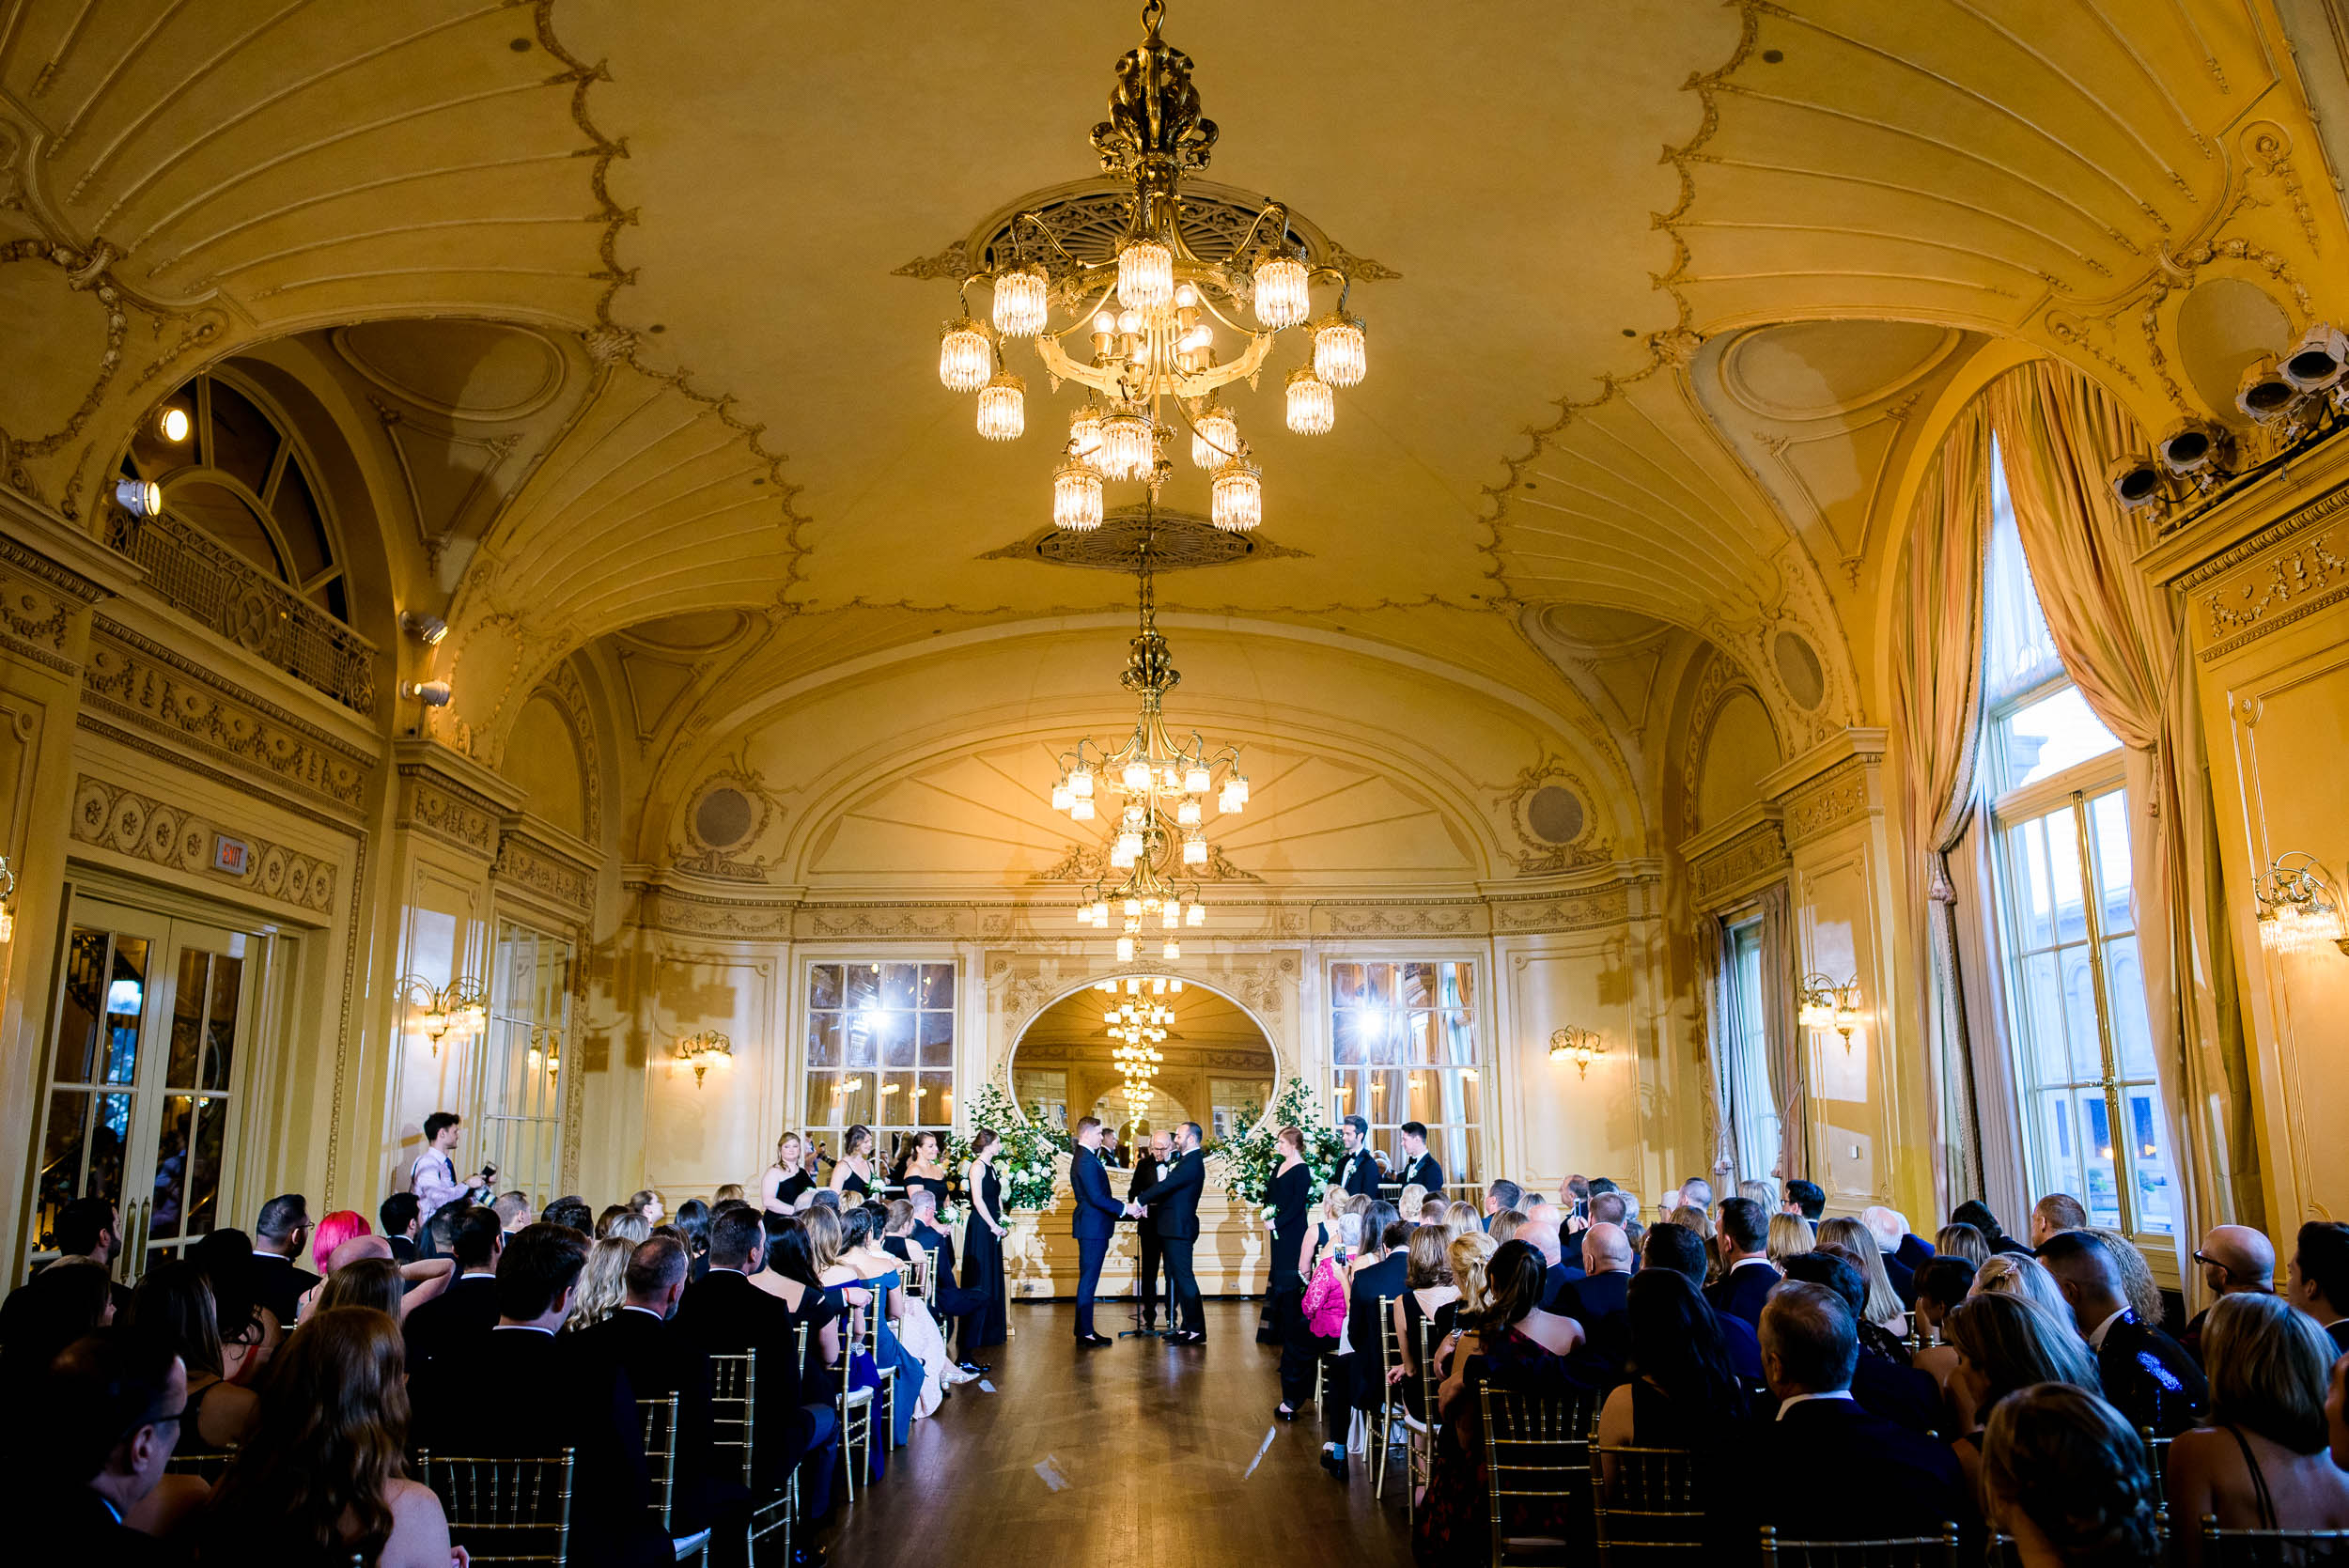 High-end wedding details for luxurious fall wedding at the Chicago Symphony Center captured by J. Brown Photography. See more wedding ideas at jbrownphotography.com!